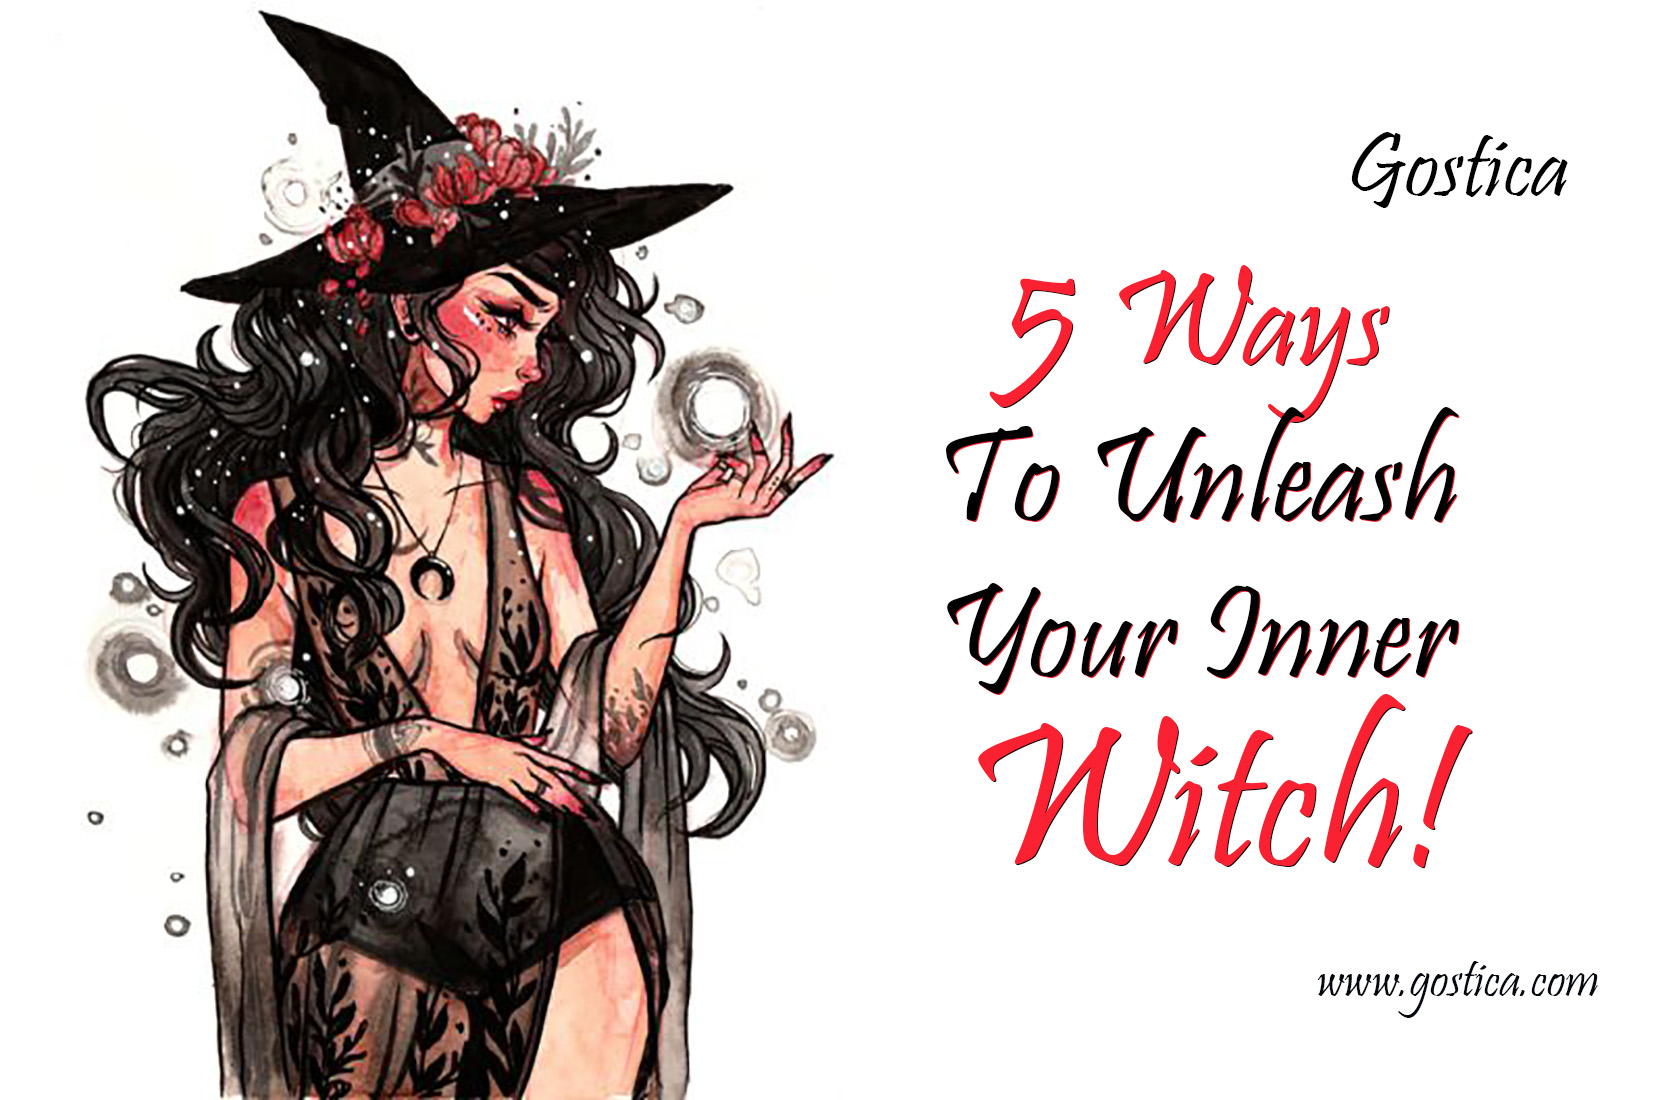 5-Ways-To-Unleash-Your-Inner-Witch.jpg